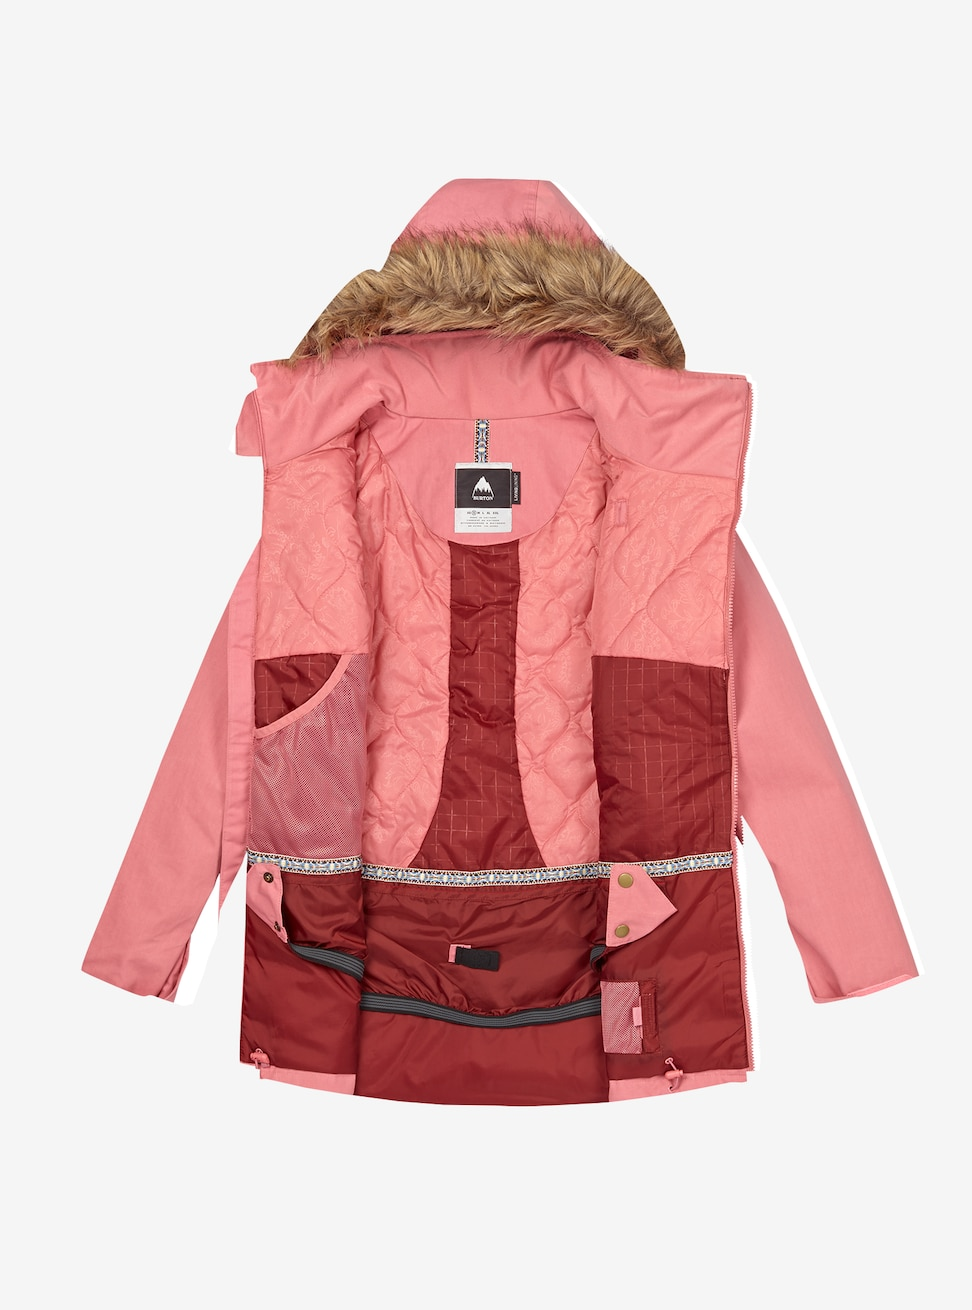 Rose Burton Hazel Ski Jacket for Women, Hood